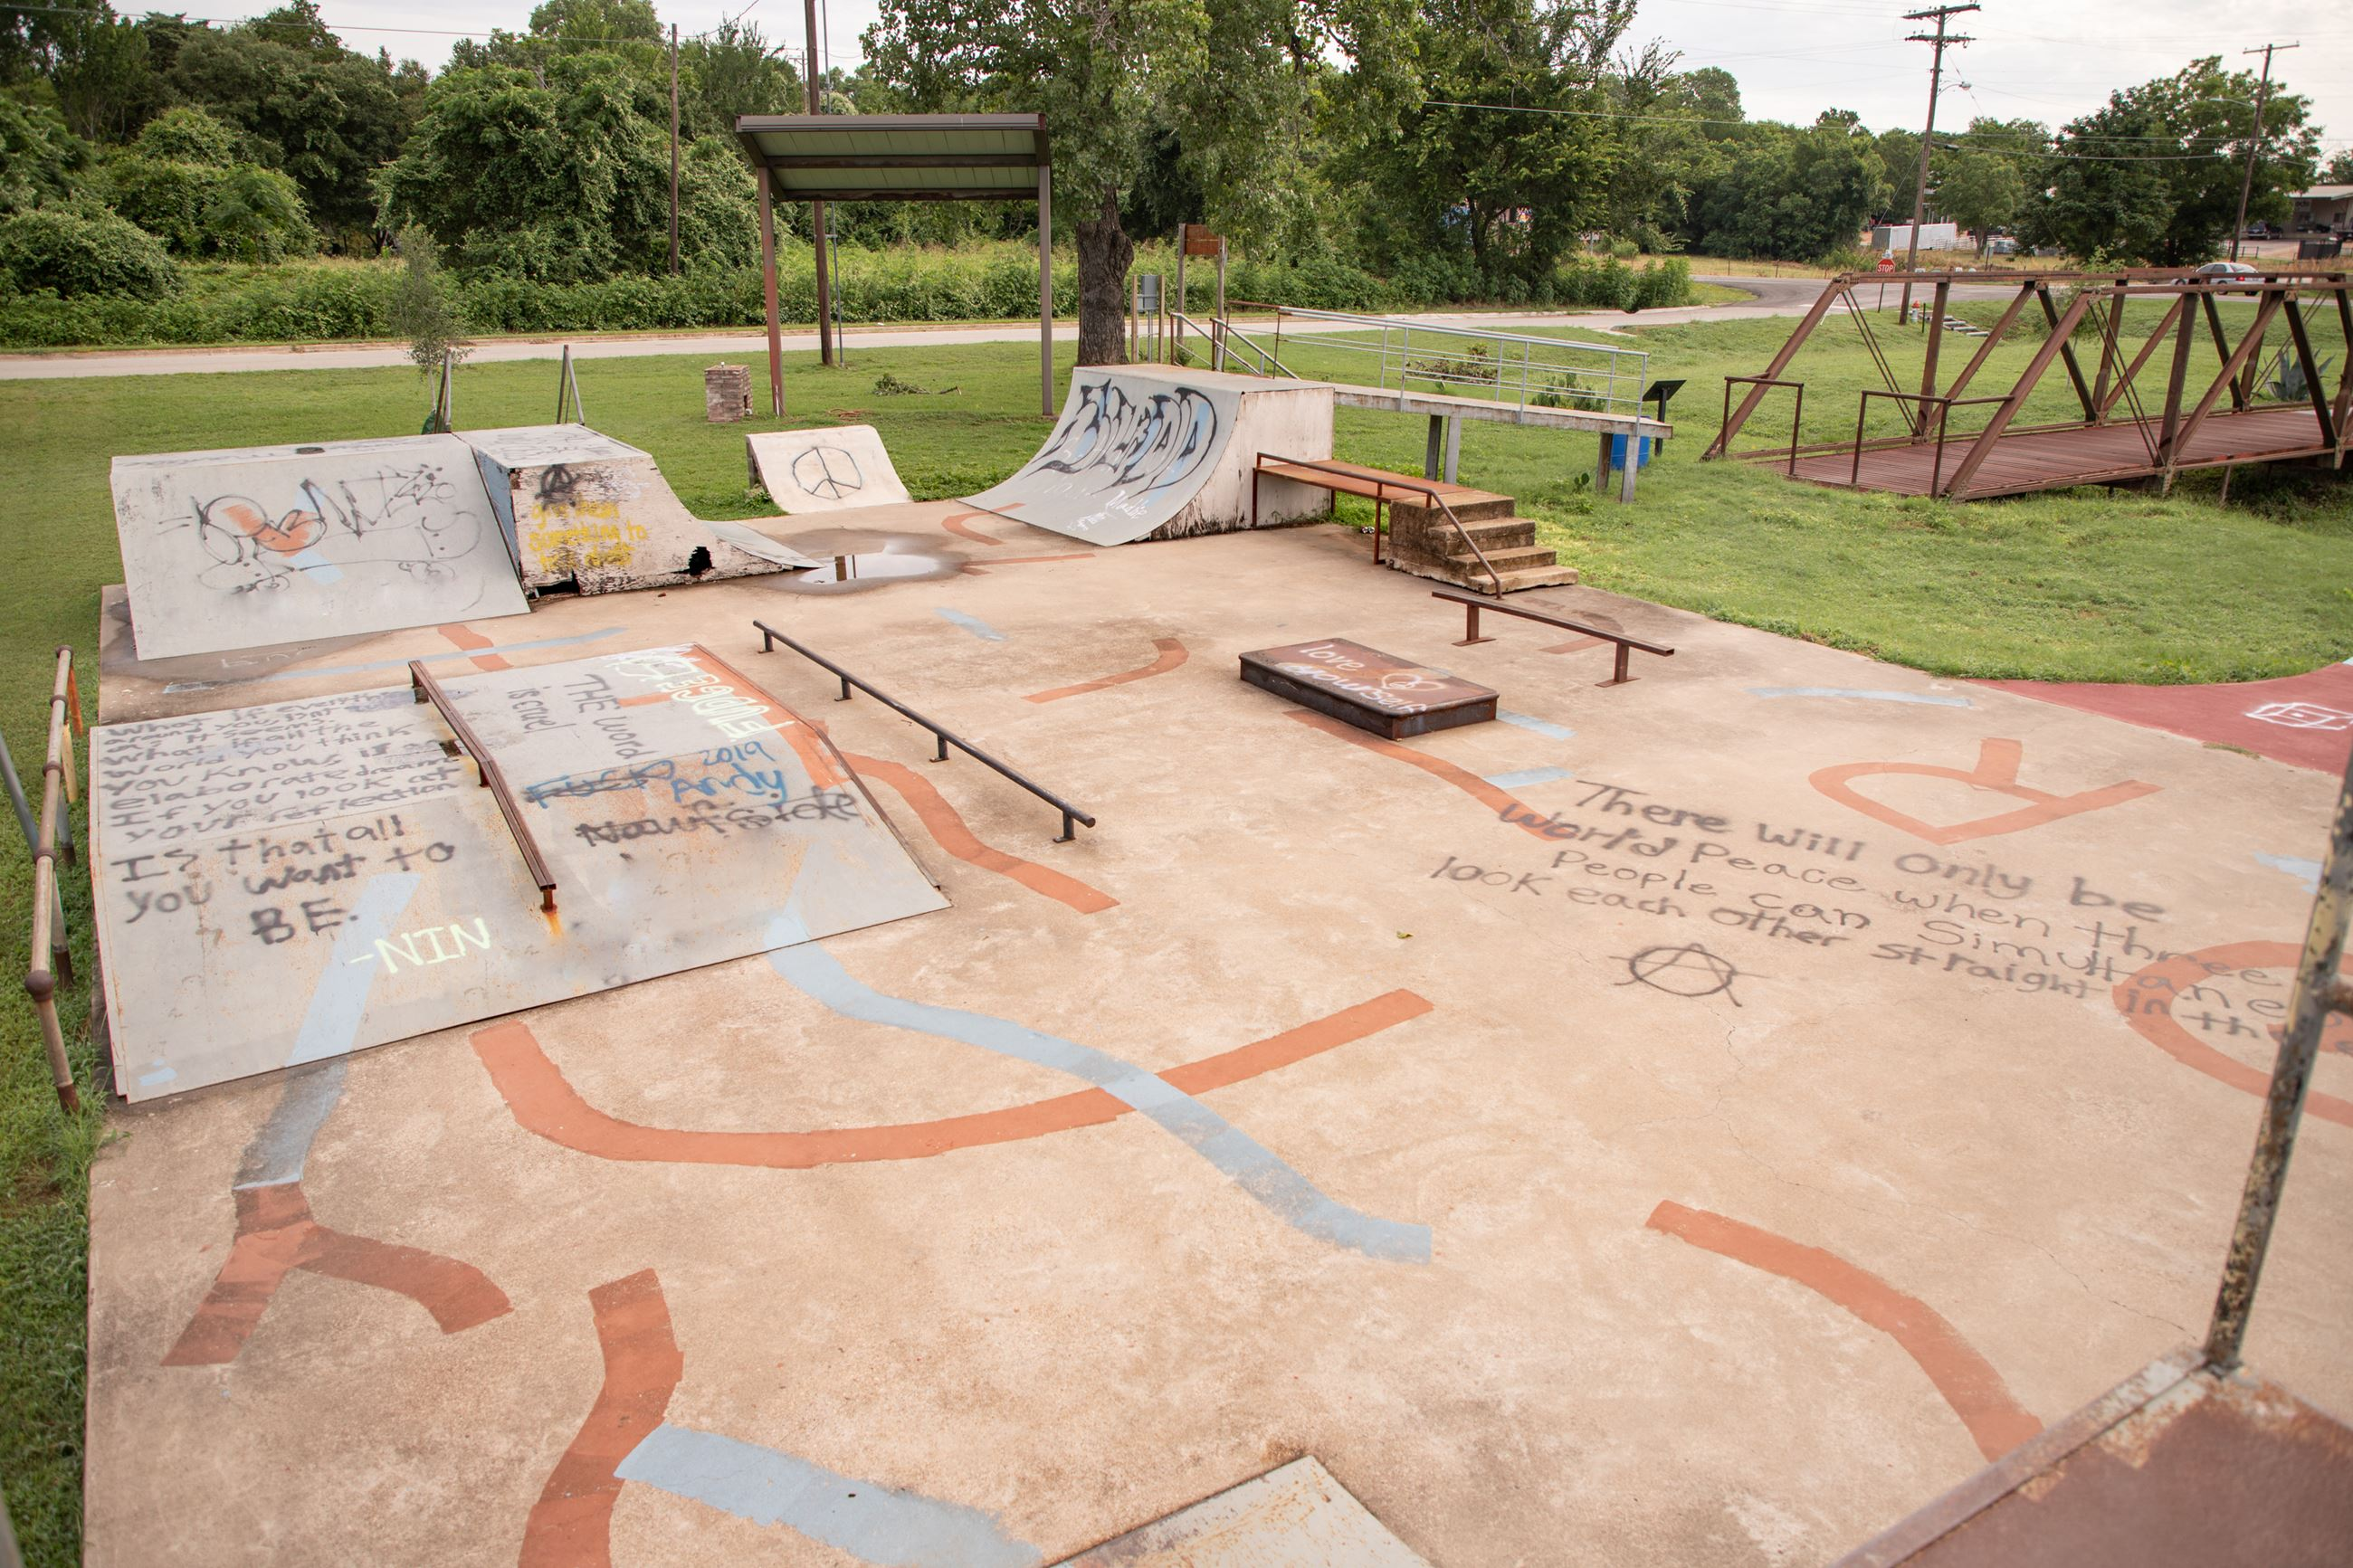 Skate Park obstacle course